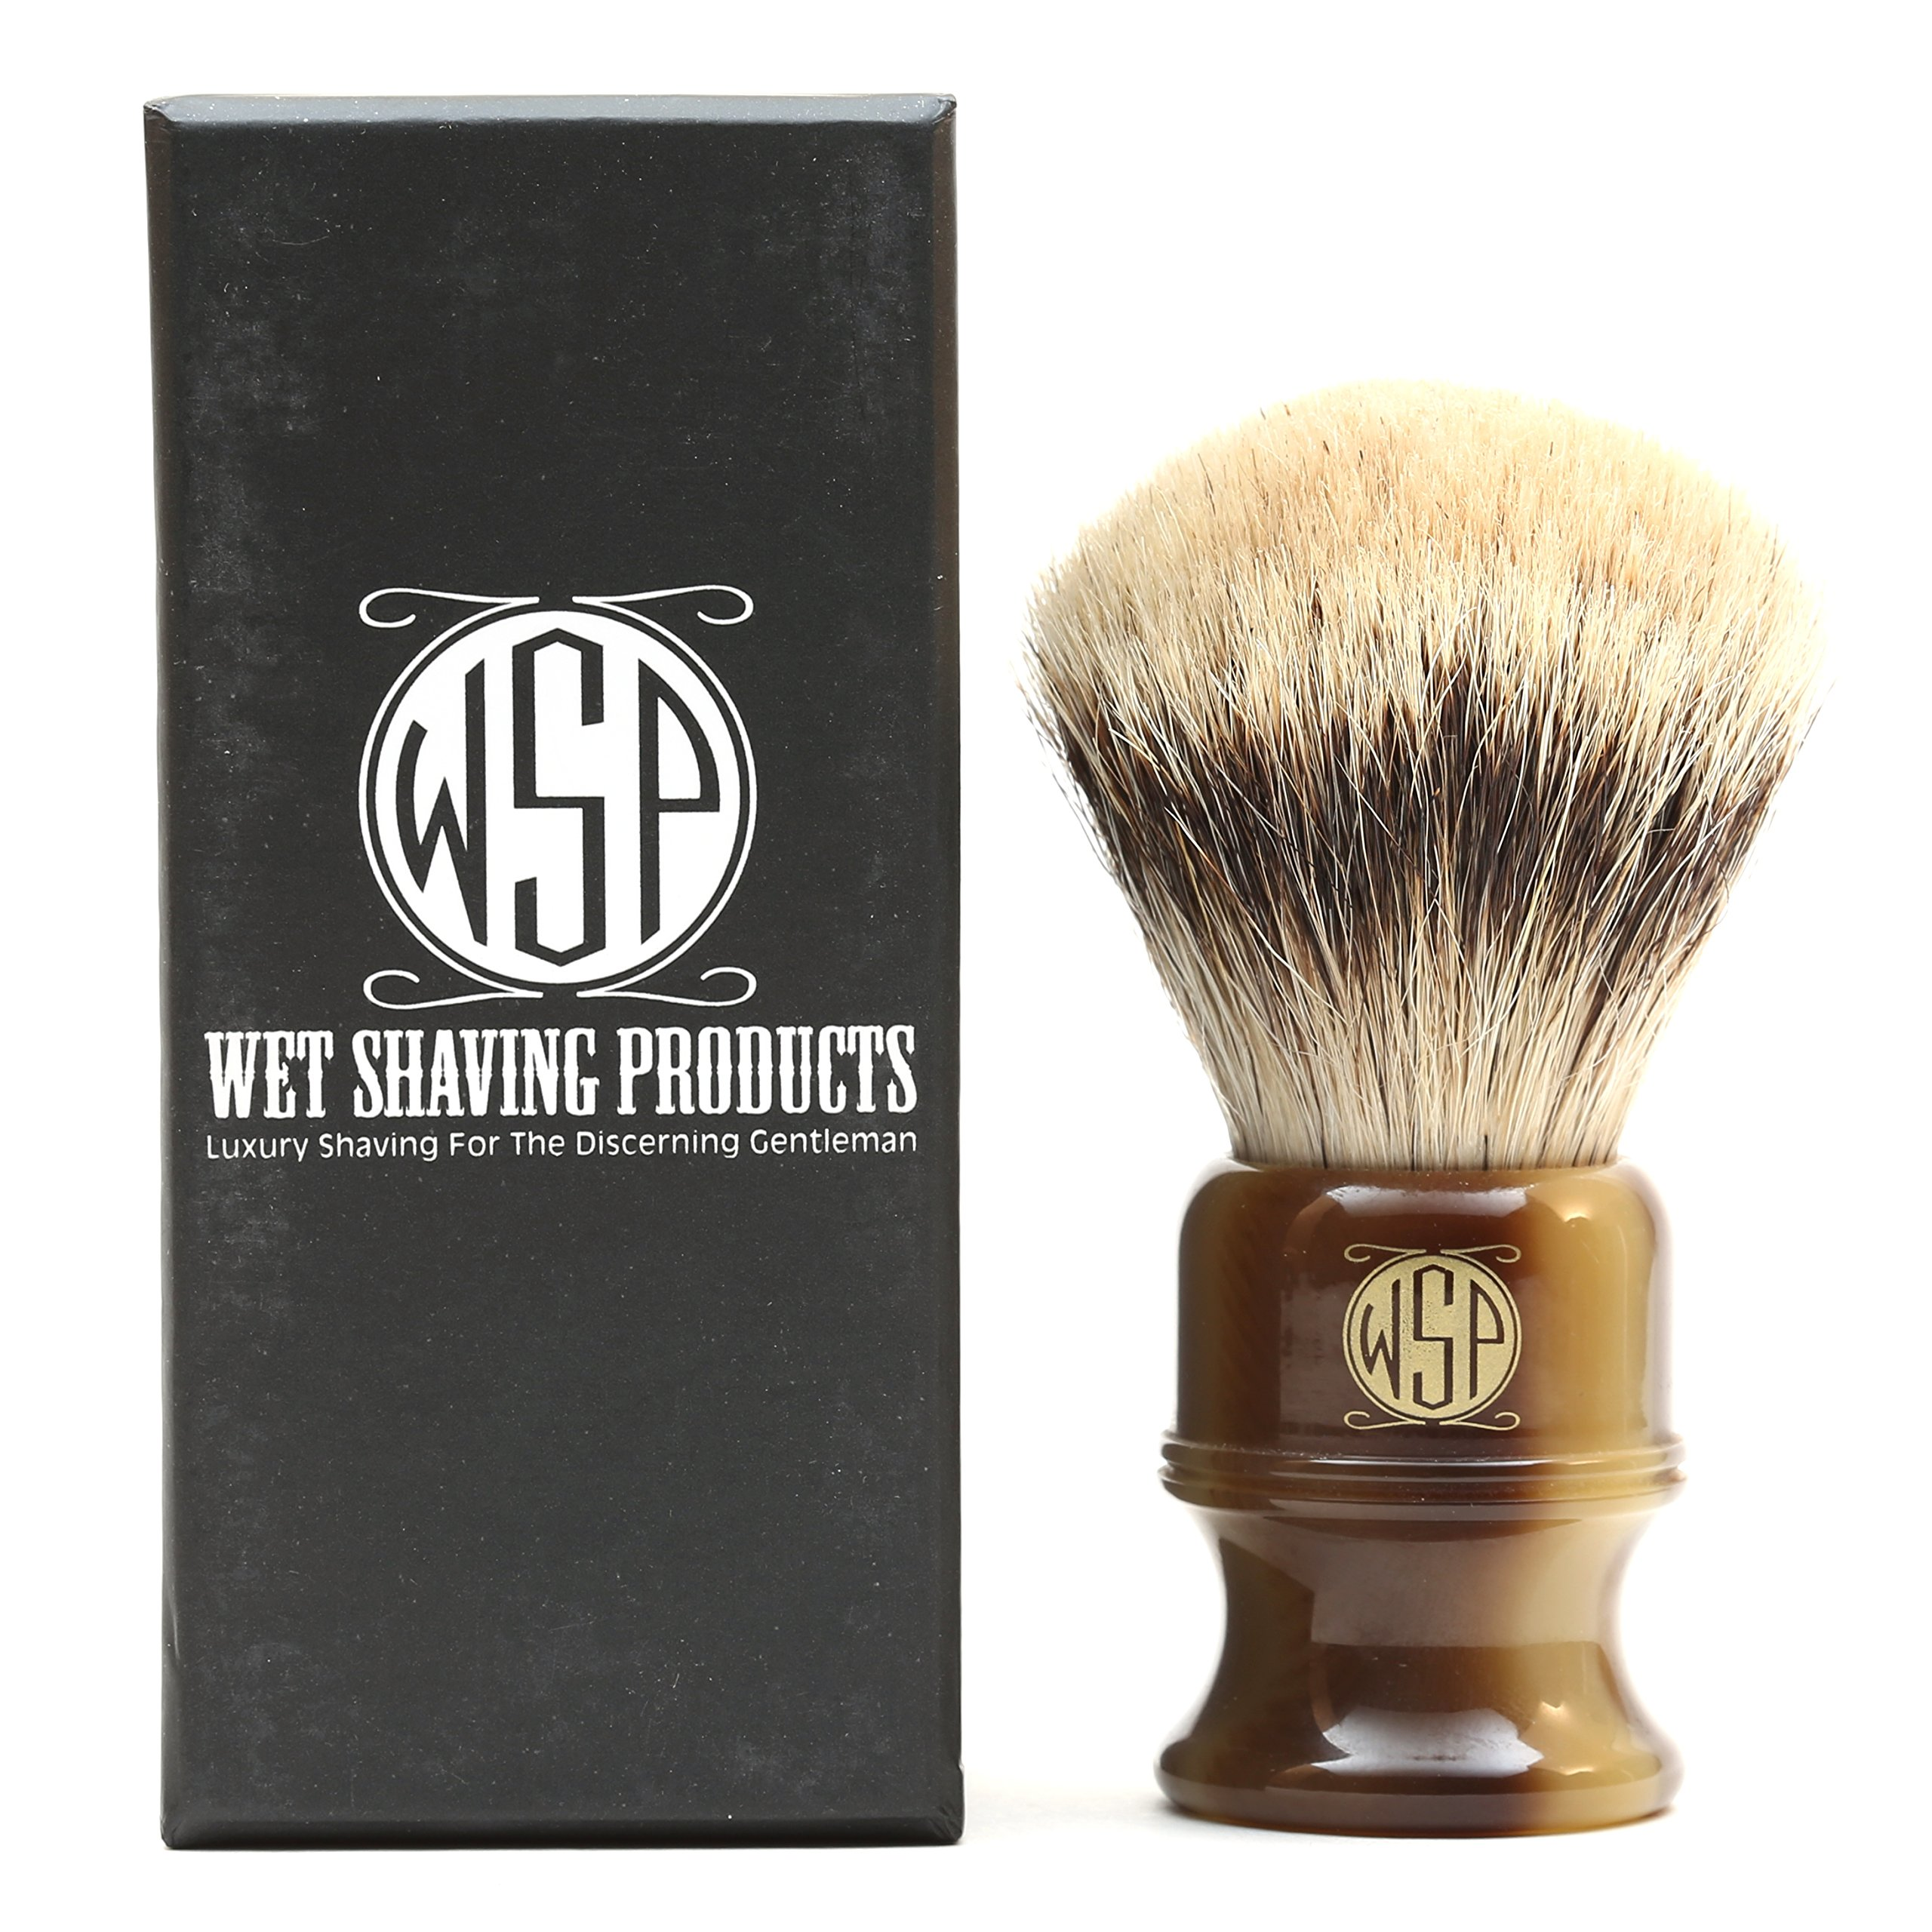 Shaving Brush High Mountain White Silvertip Badger Large (26mm) Extra Dense WSP ''Stubby'' by Wet Shaving Products